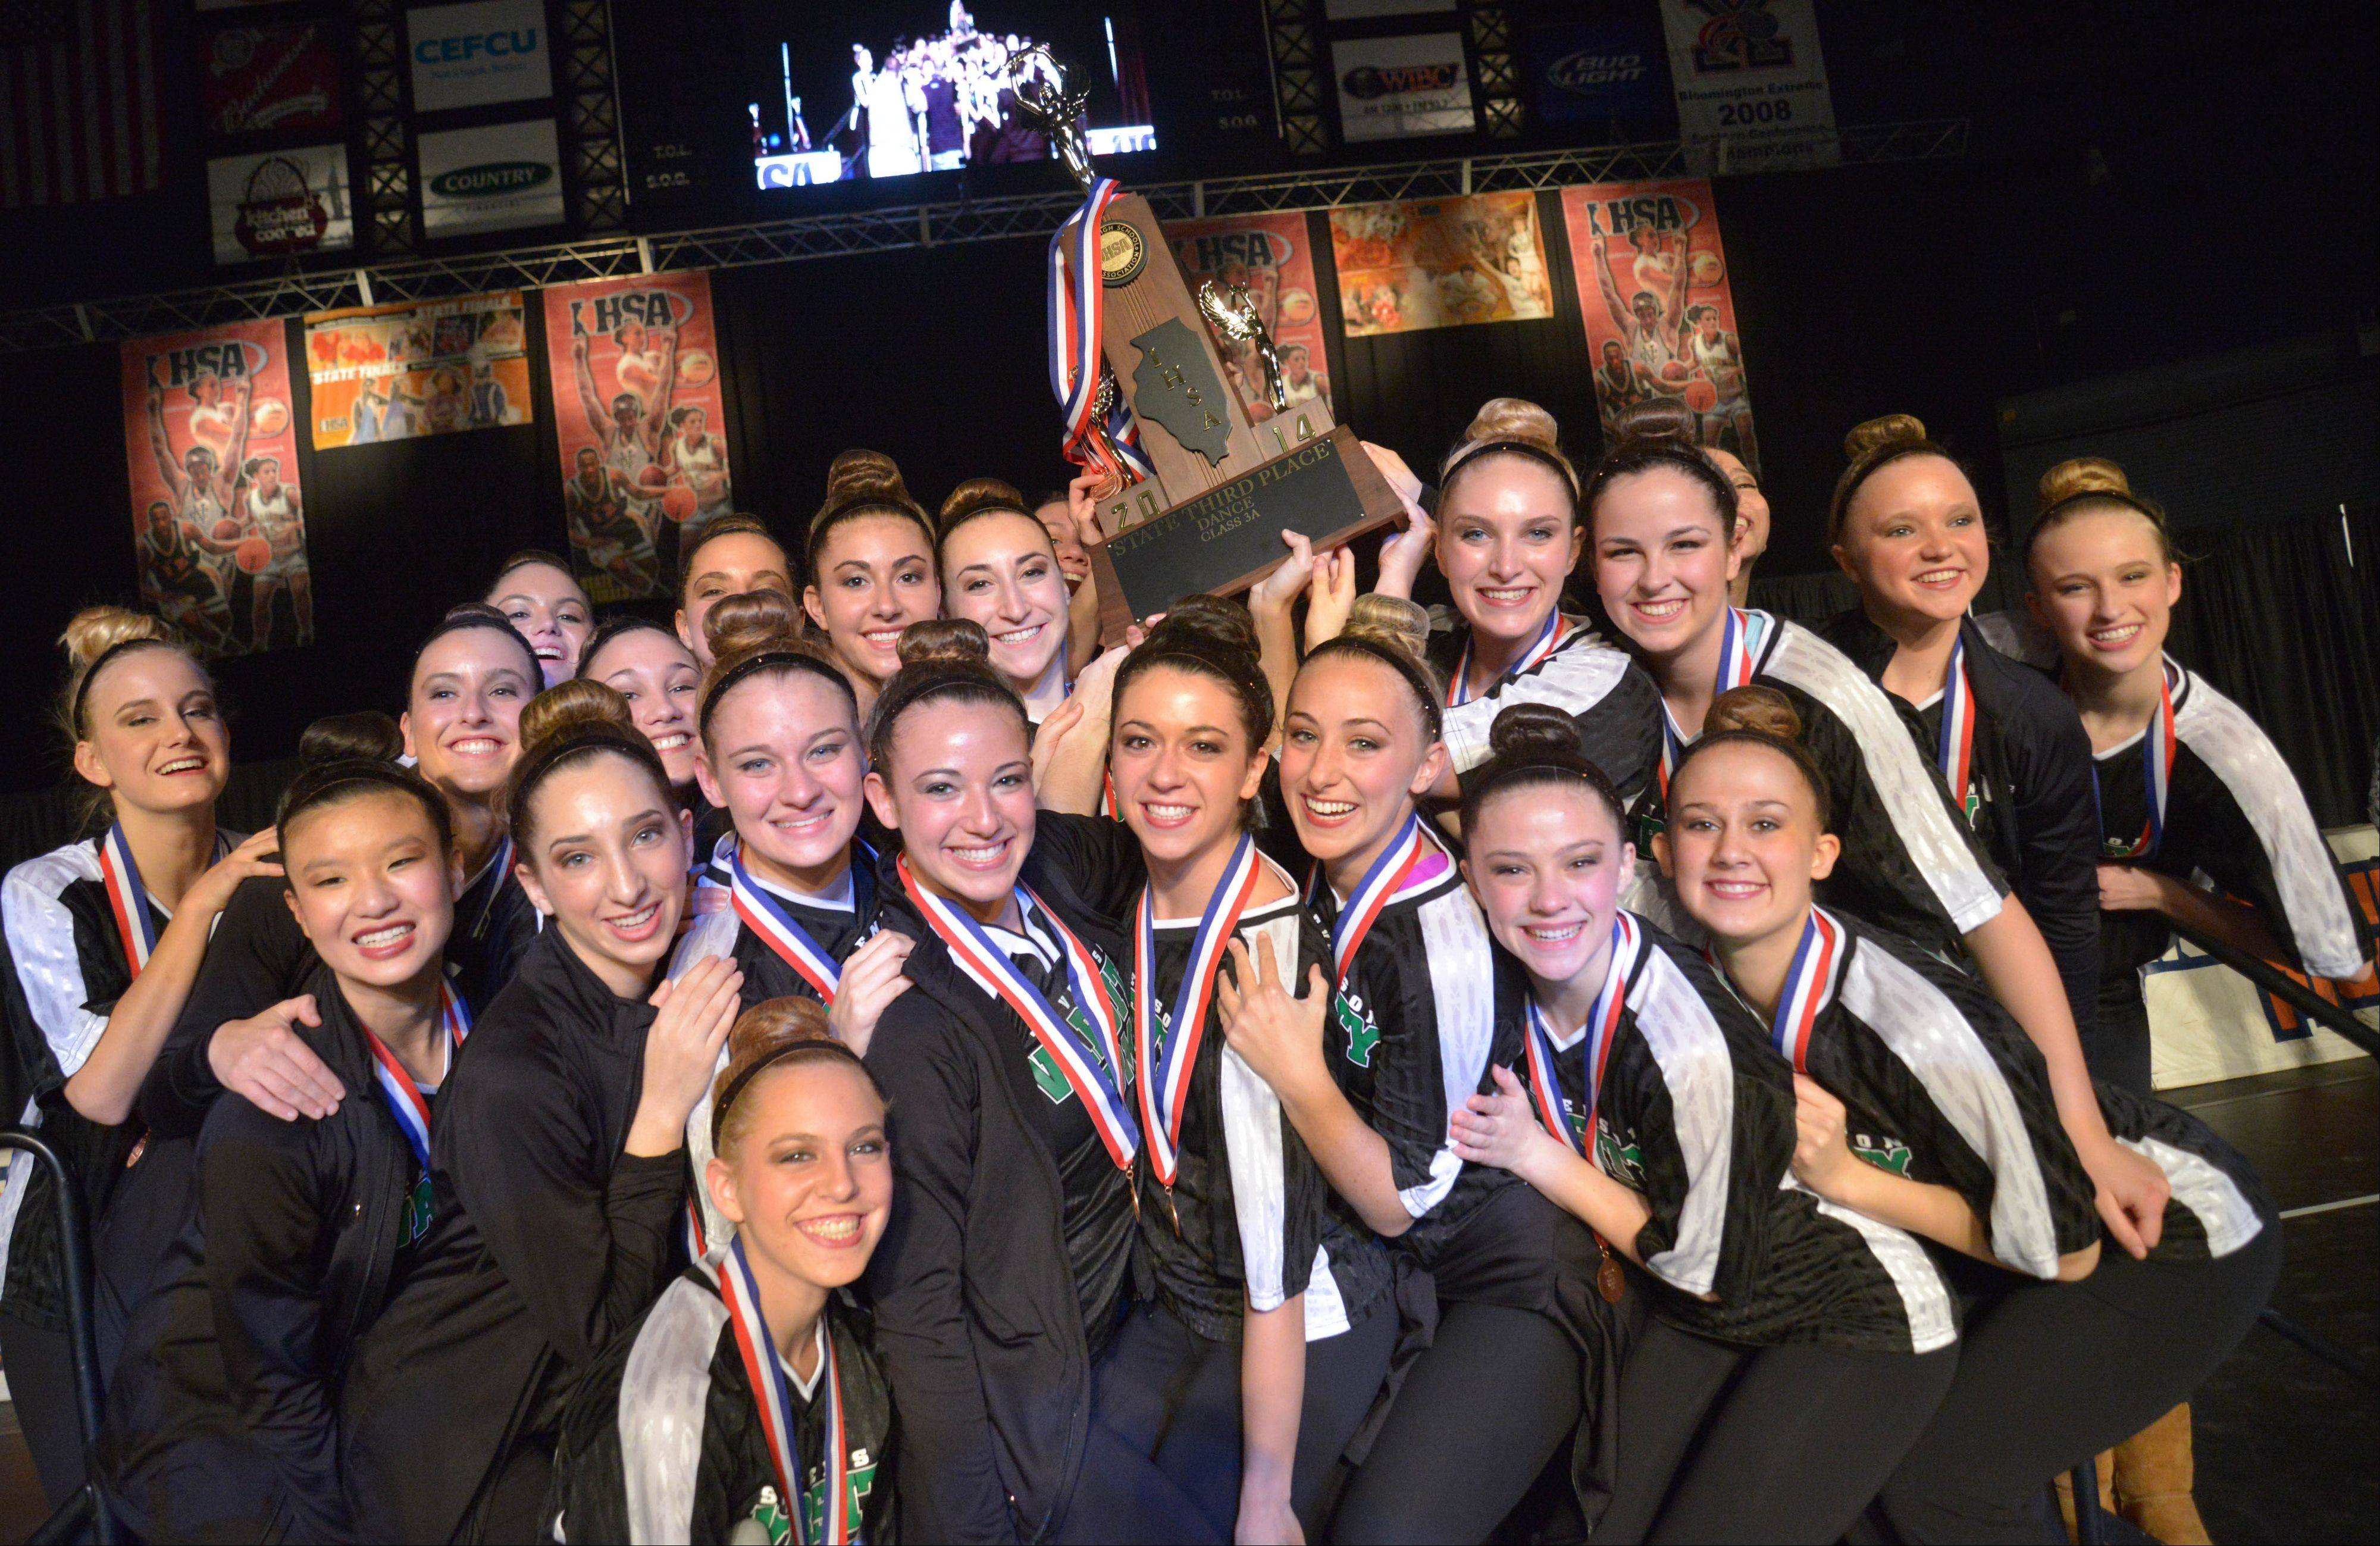 Stevenson High School after they won 3rd in the 3A IHSA Dance State Final at U.S. Cellular Coliseum in Bloomington Saturday. 90 teams vied for state champion at this event.